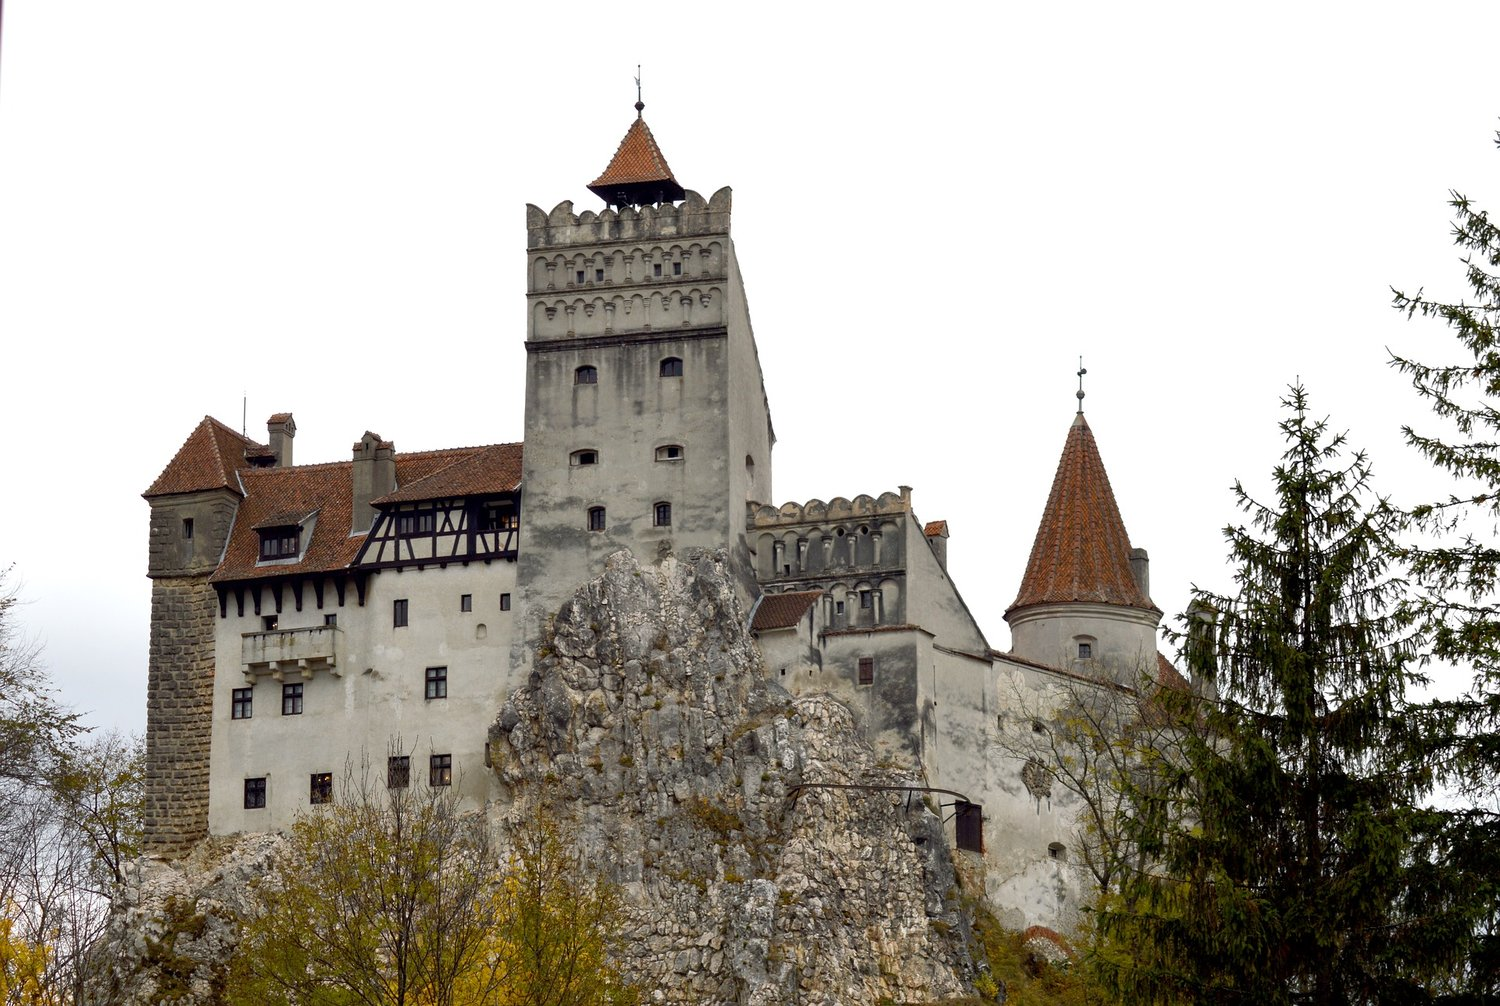 Bran Castle, built in 1212, is better known as Dracula's Castle.